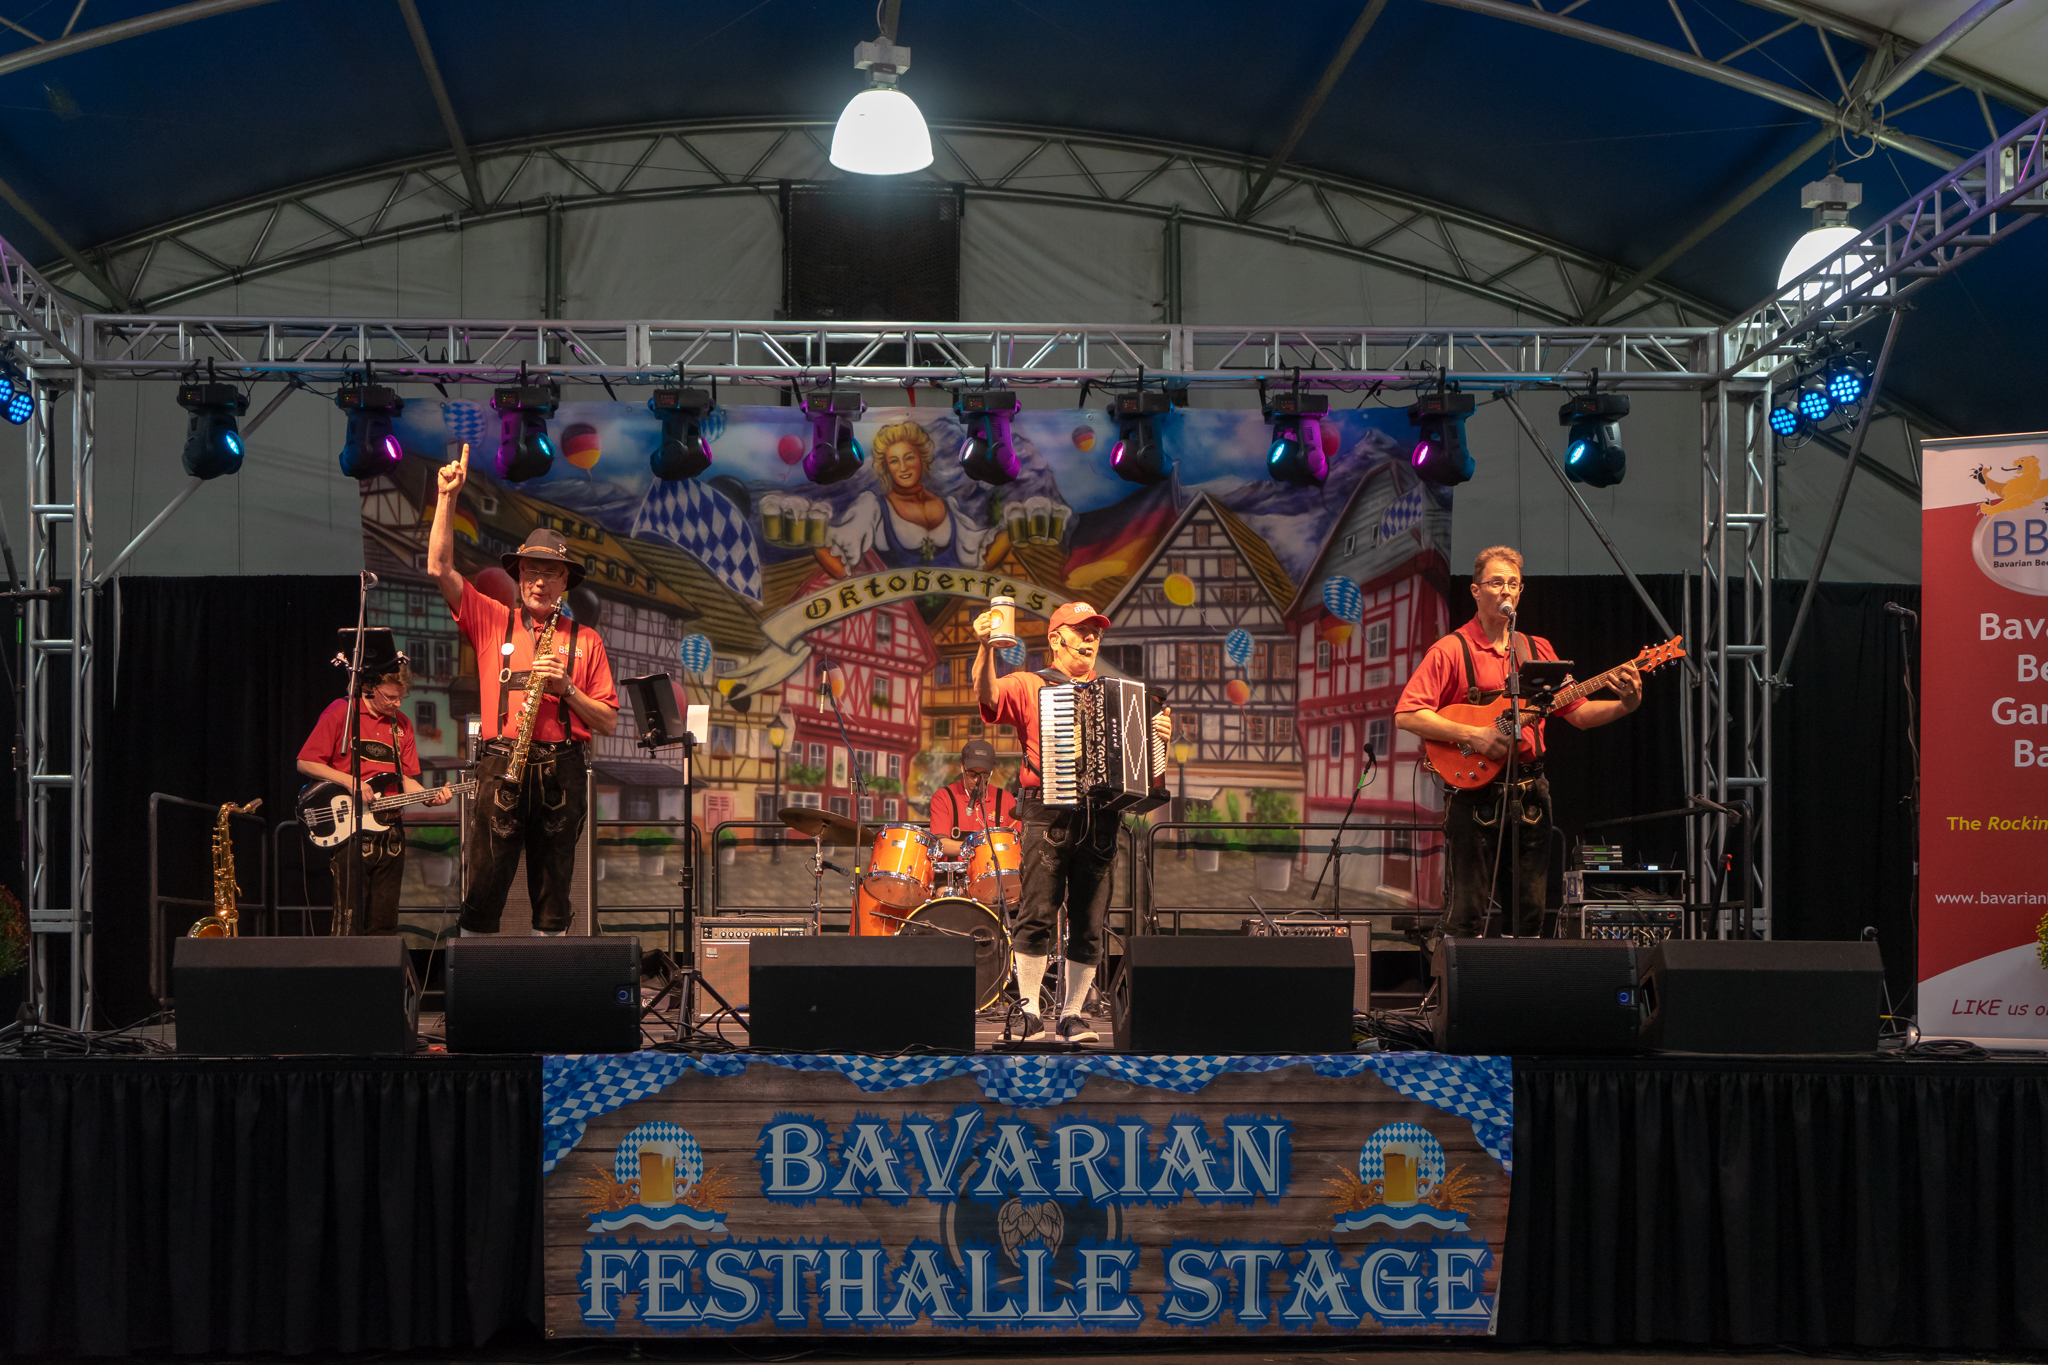 Bavarian Festhalle Stage at Oktoberfest NW